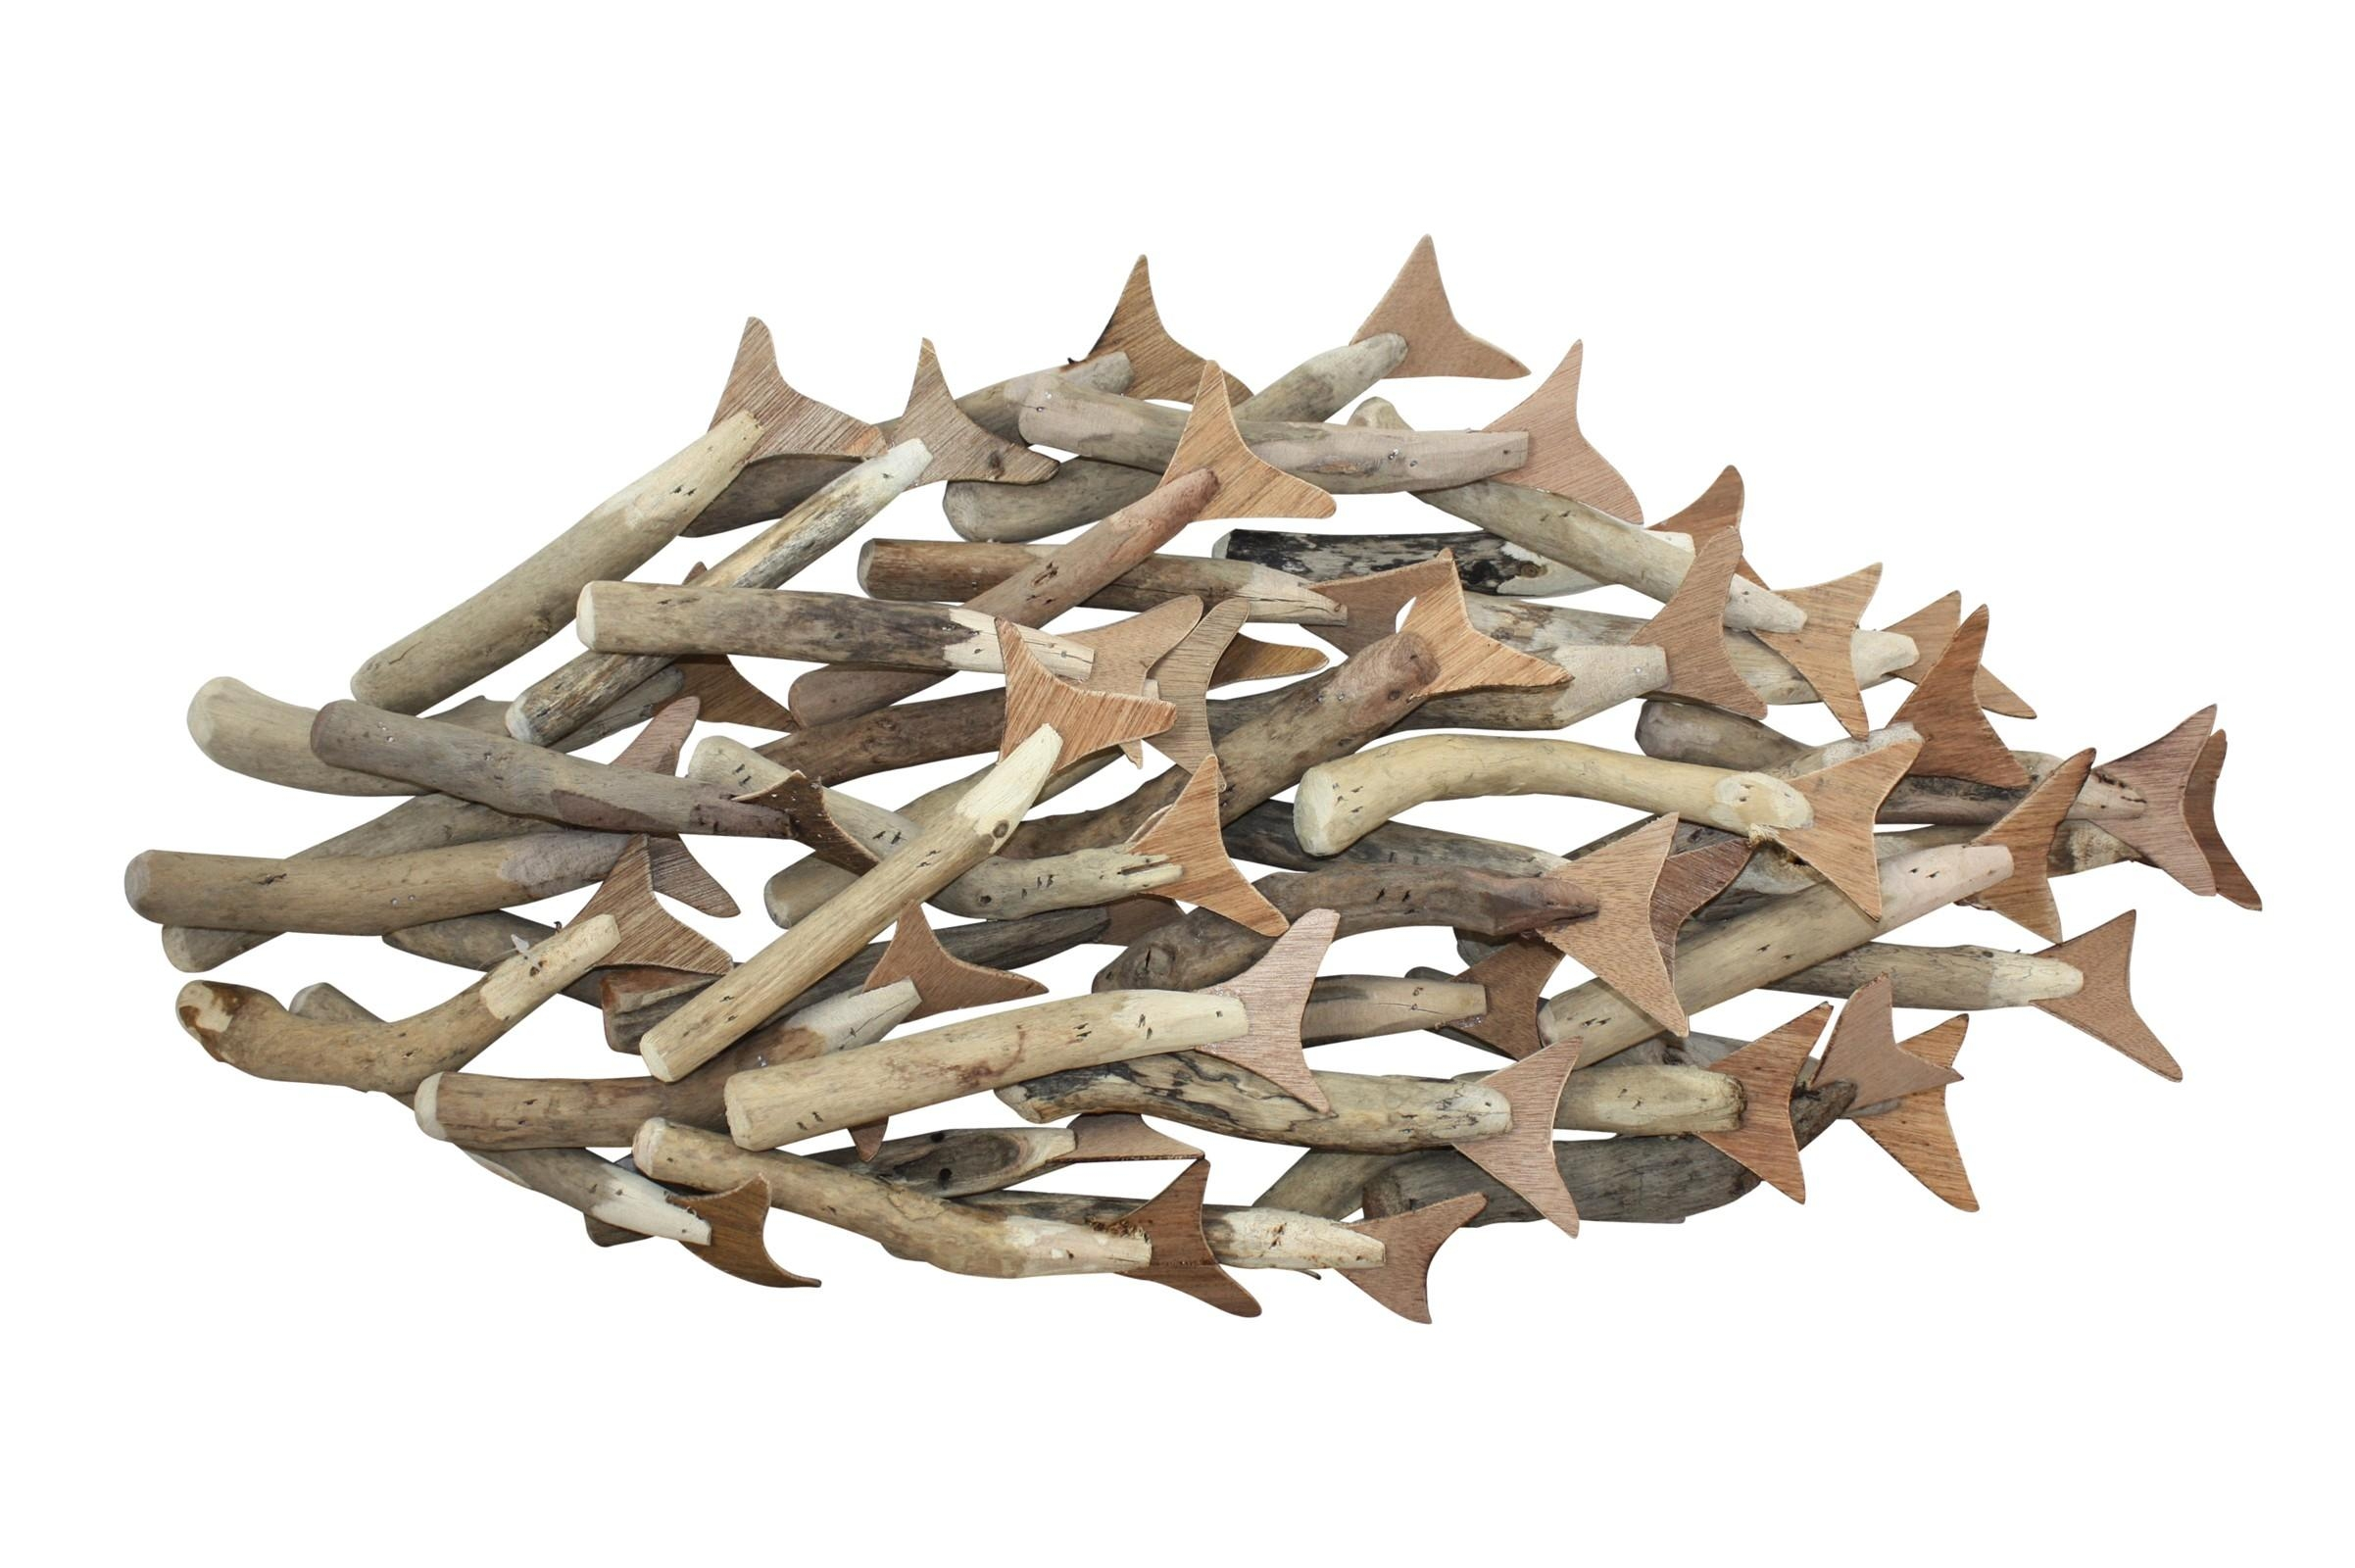 20 collection of stainless steel fish wall art wall art for Metal fish art wall decor